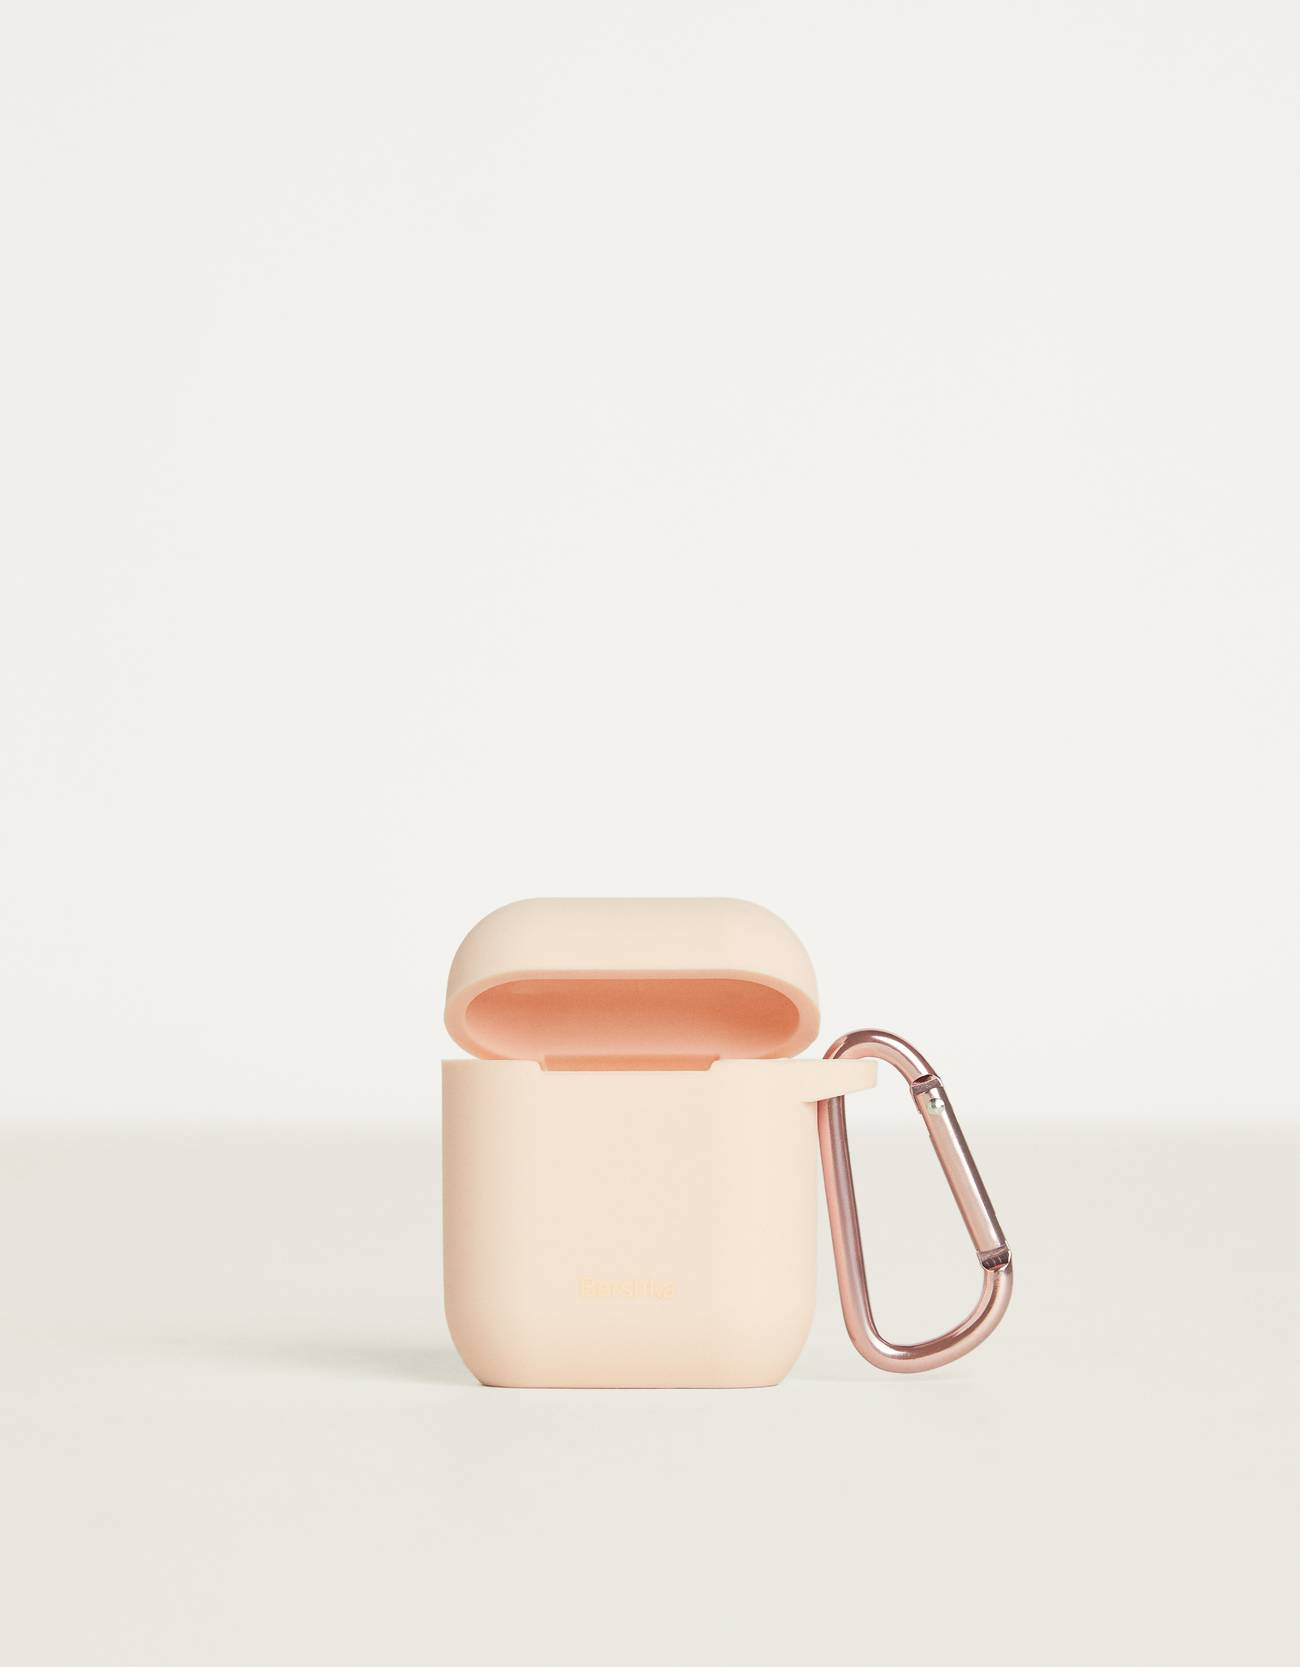 AirPods case with lobster clasp